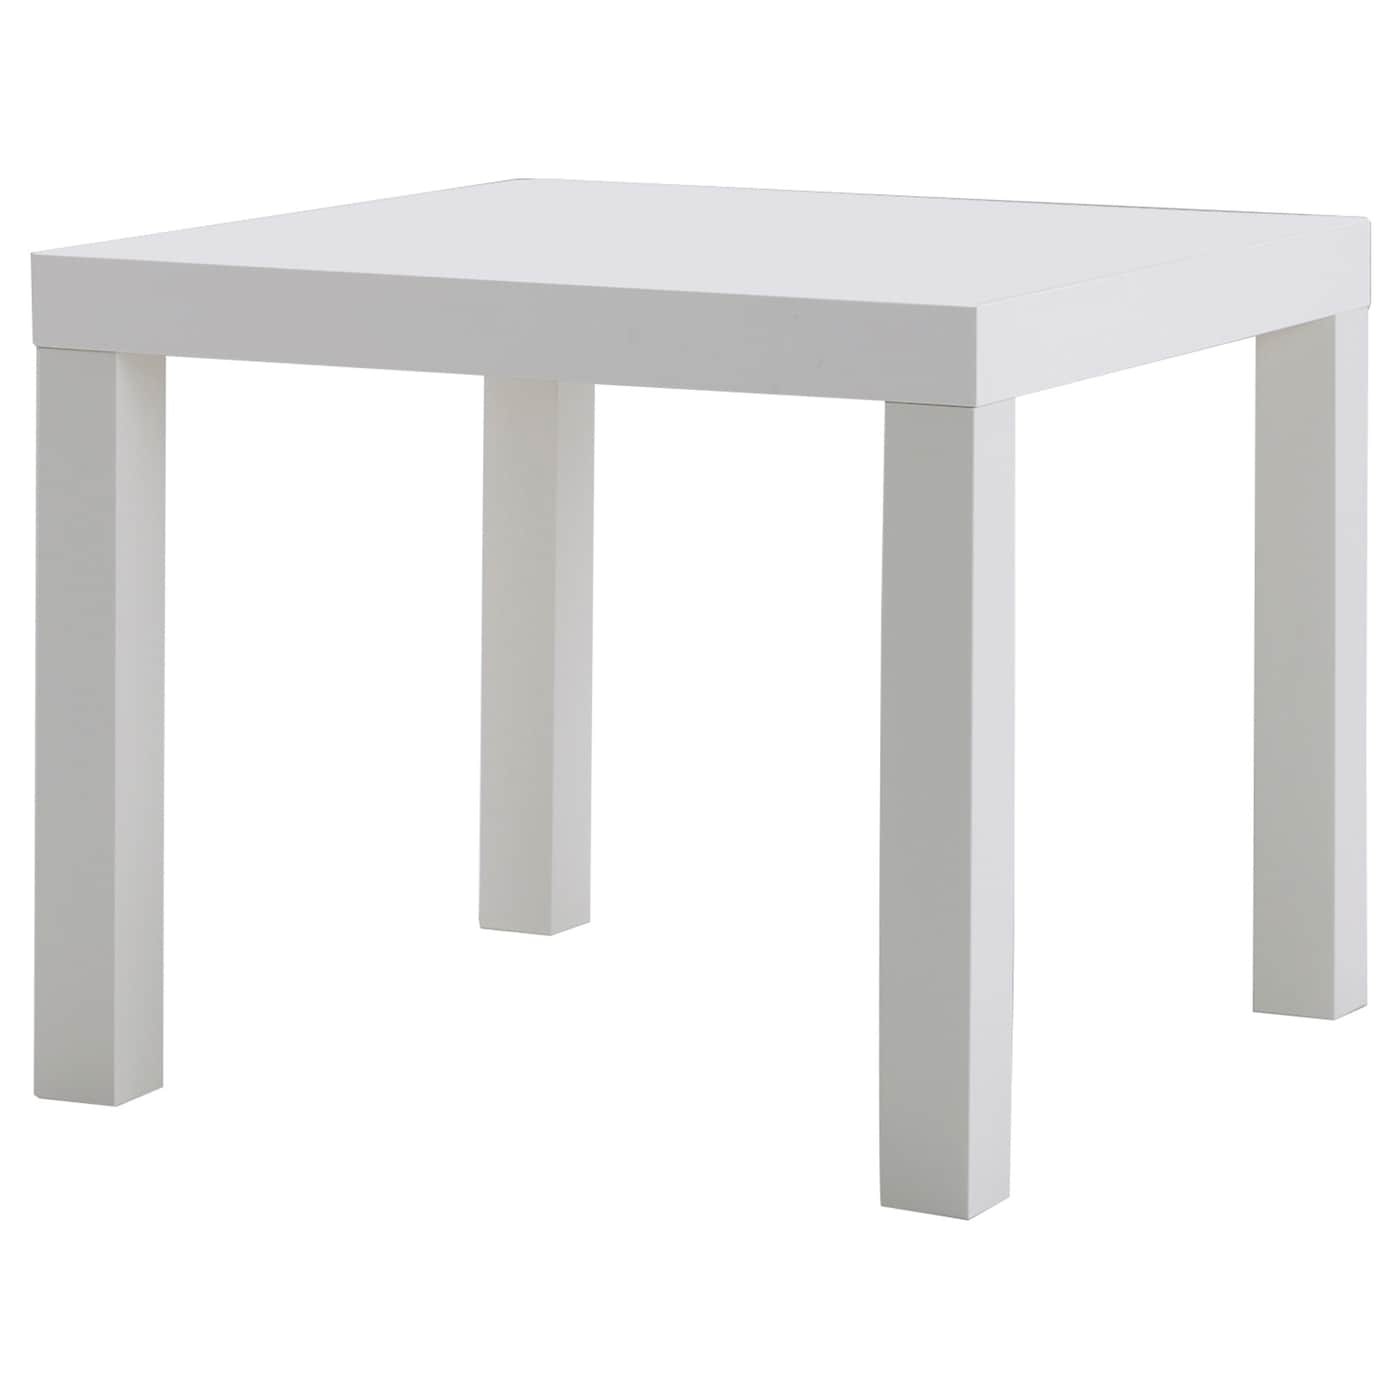 Lack side table white 55x55 cm ikea for Ikea table basse relevable